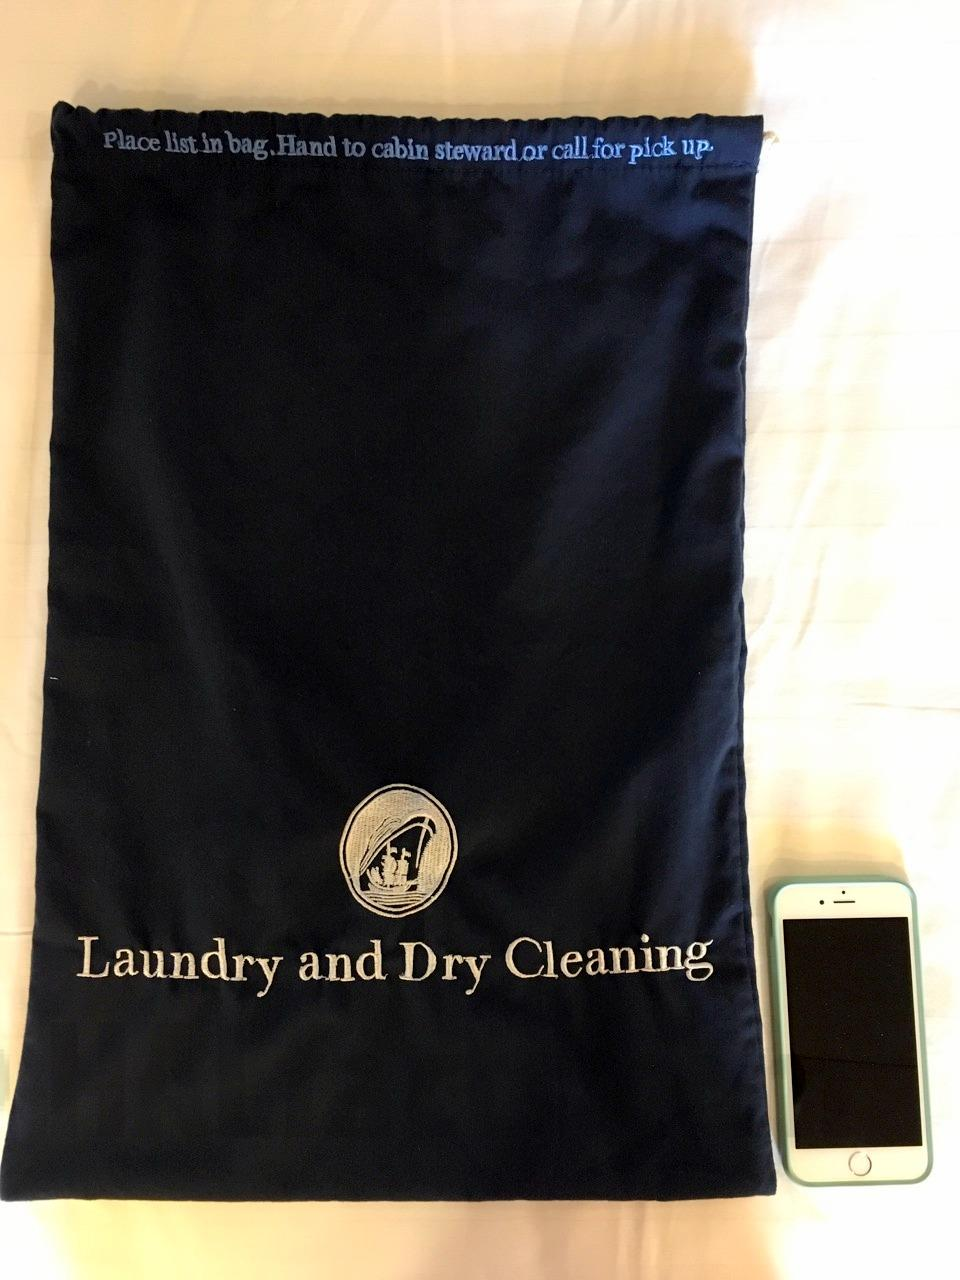 LaundryBag_Sept2016_Europe